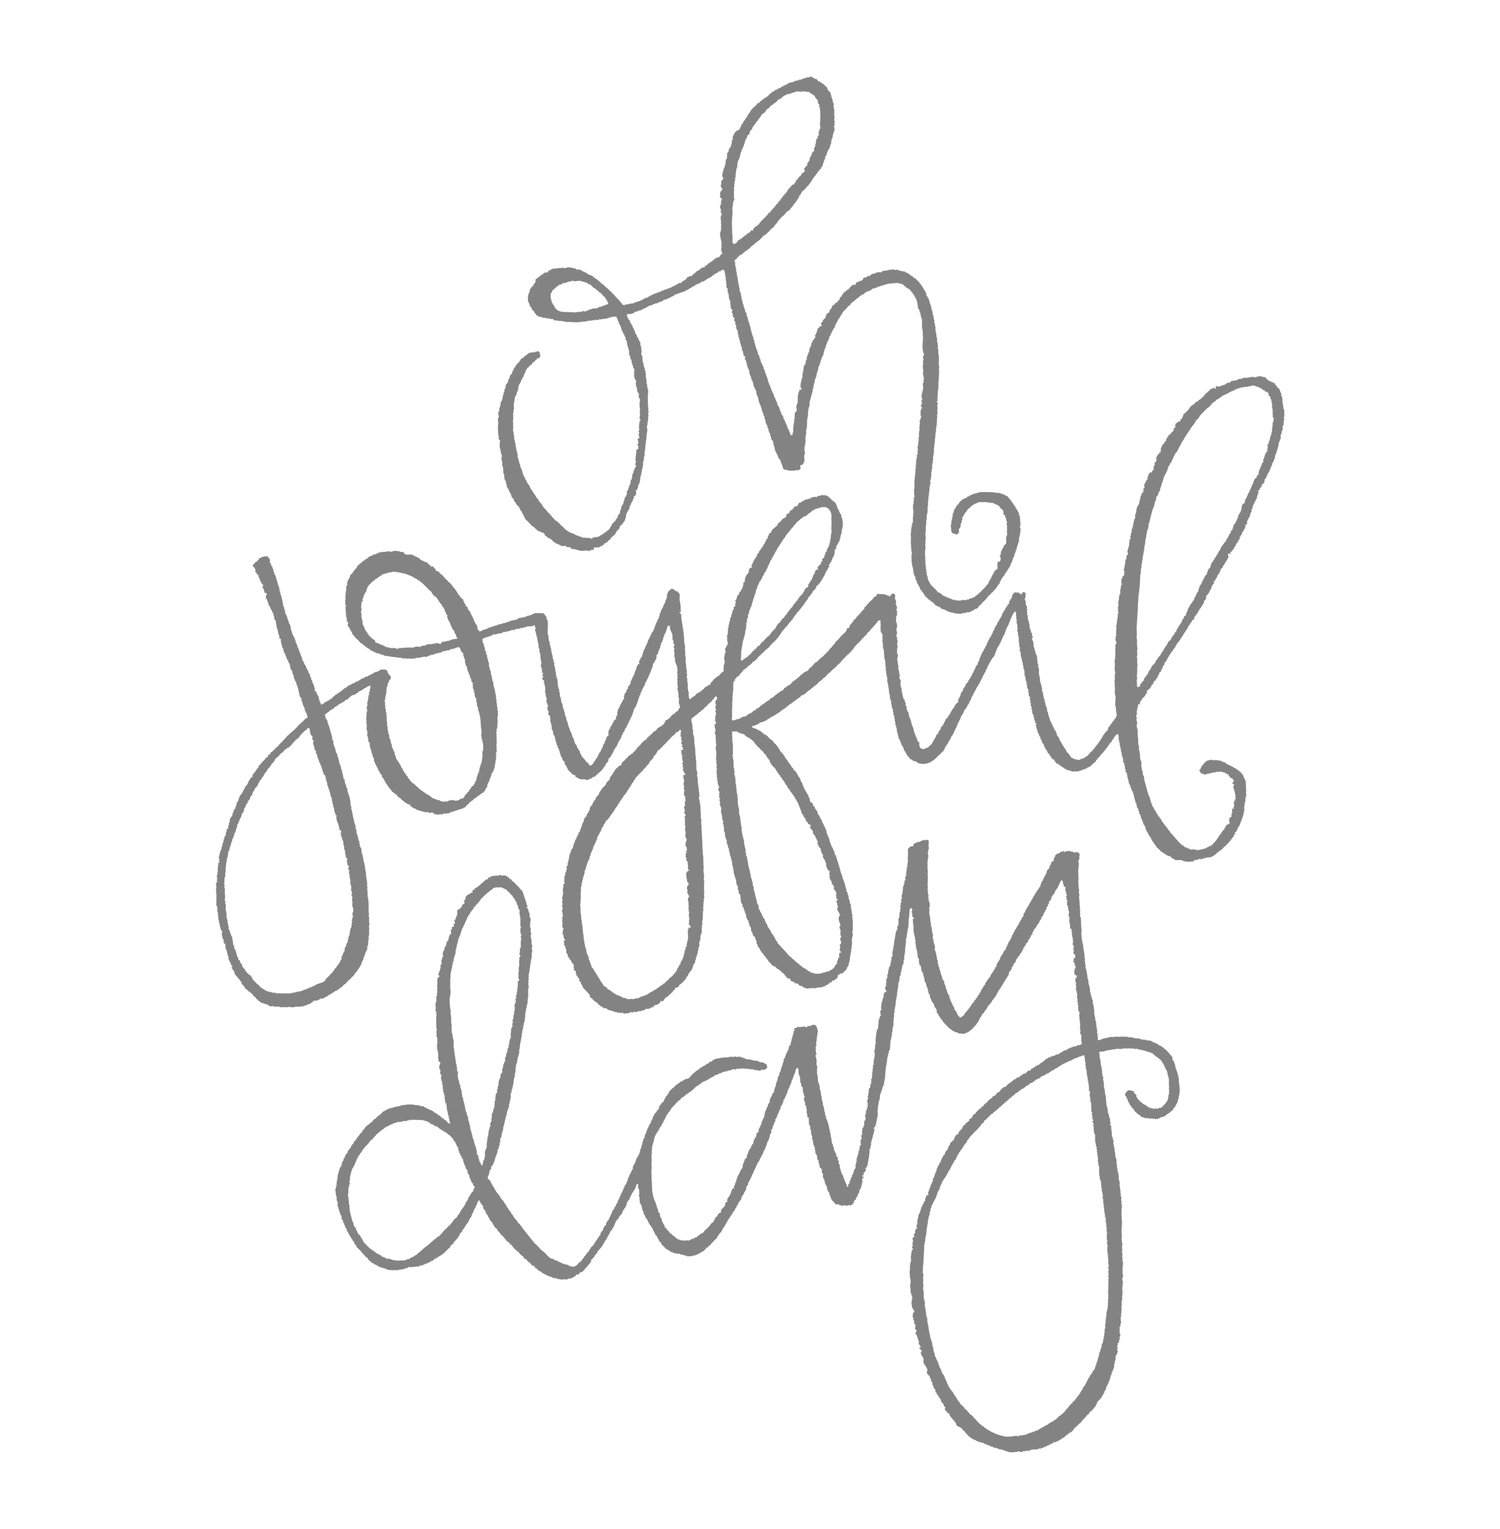 Oh Joyful Day | Pittsburgh, PA Letterer + Stationer